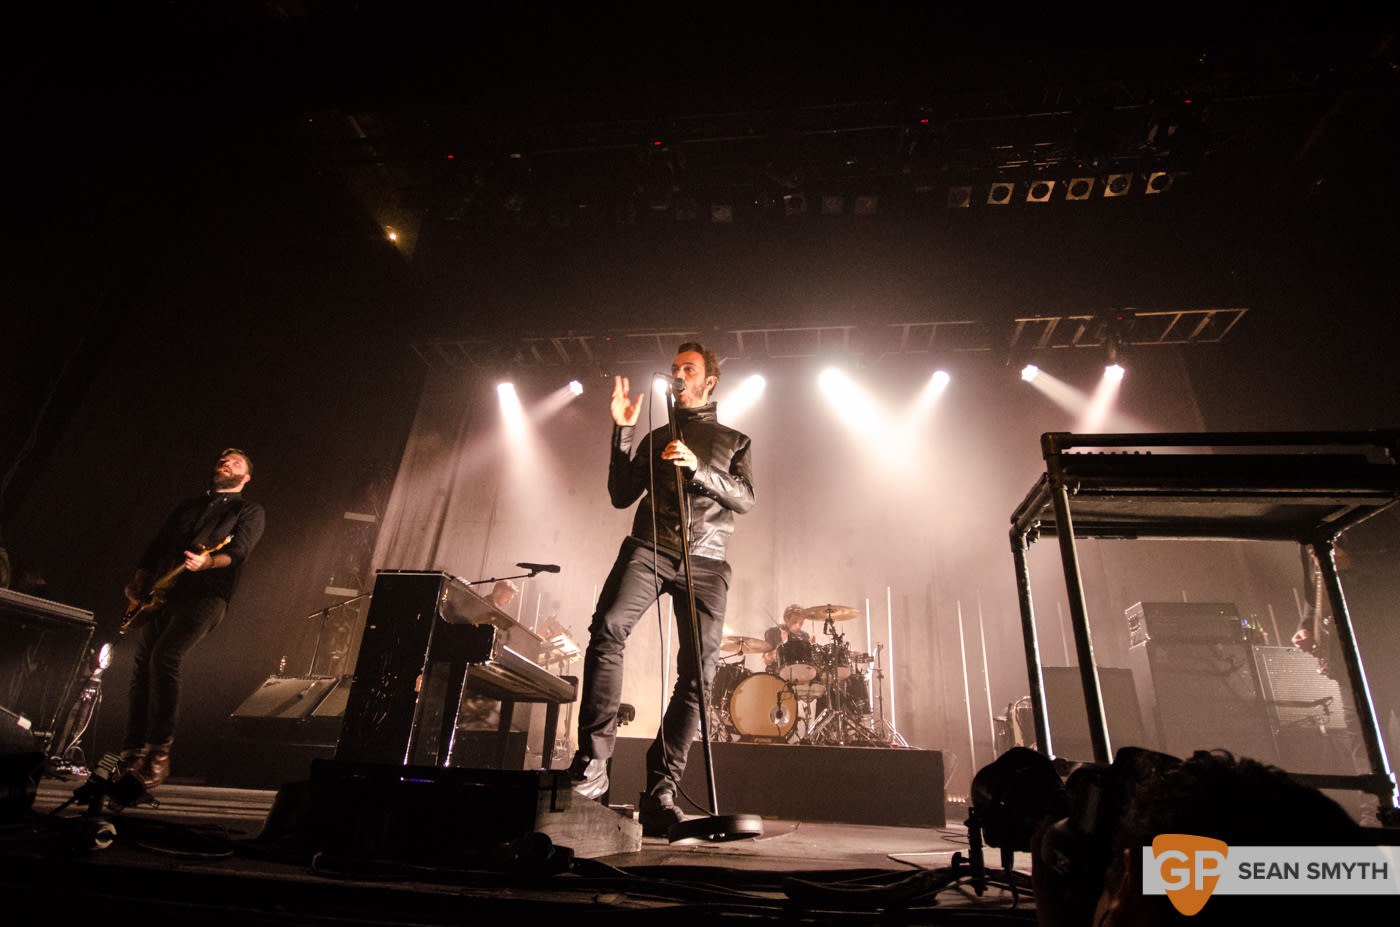 editors-at-the-olympia-theatre-by-sean-smyth-10-10-15-7-of-28_21469303883_o